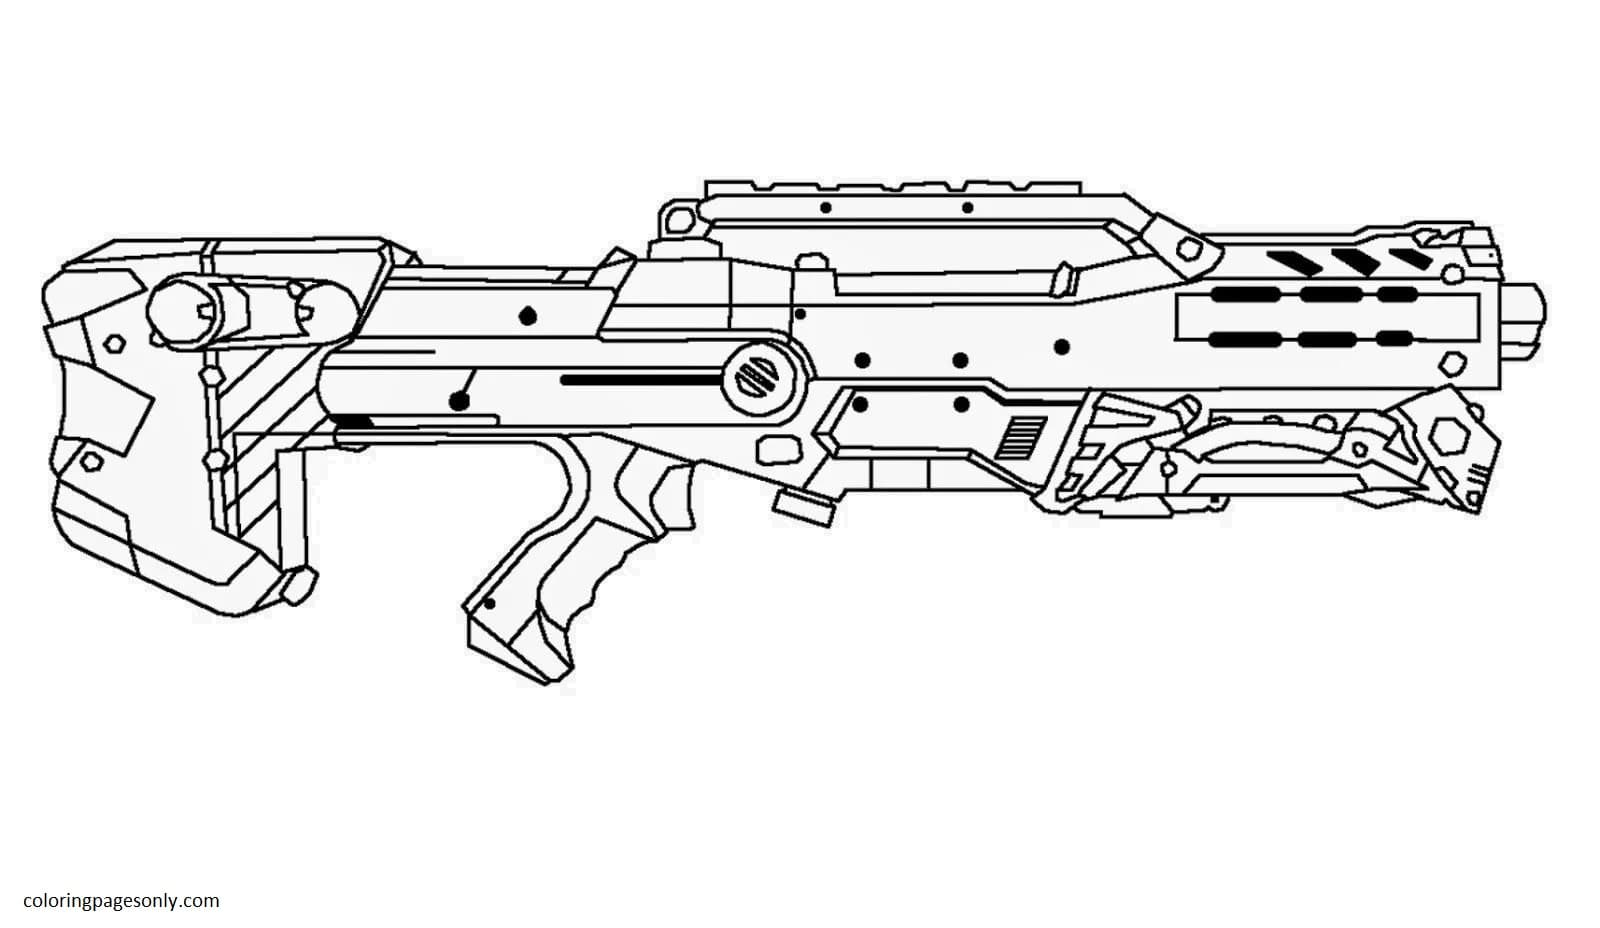 Super Accurate Nerf Weapons Coloring Page